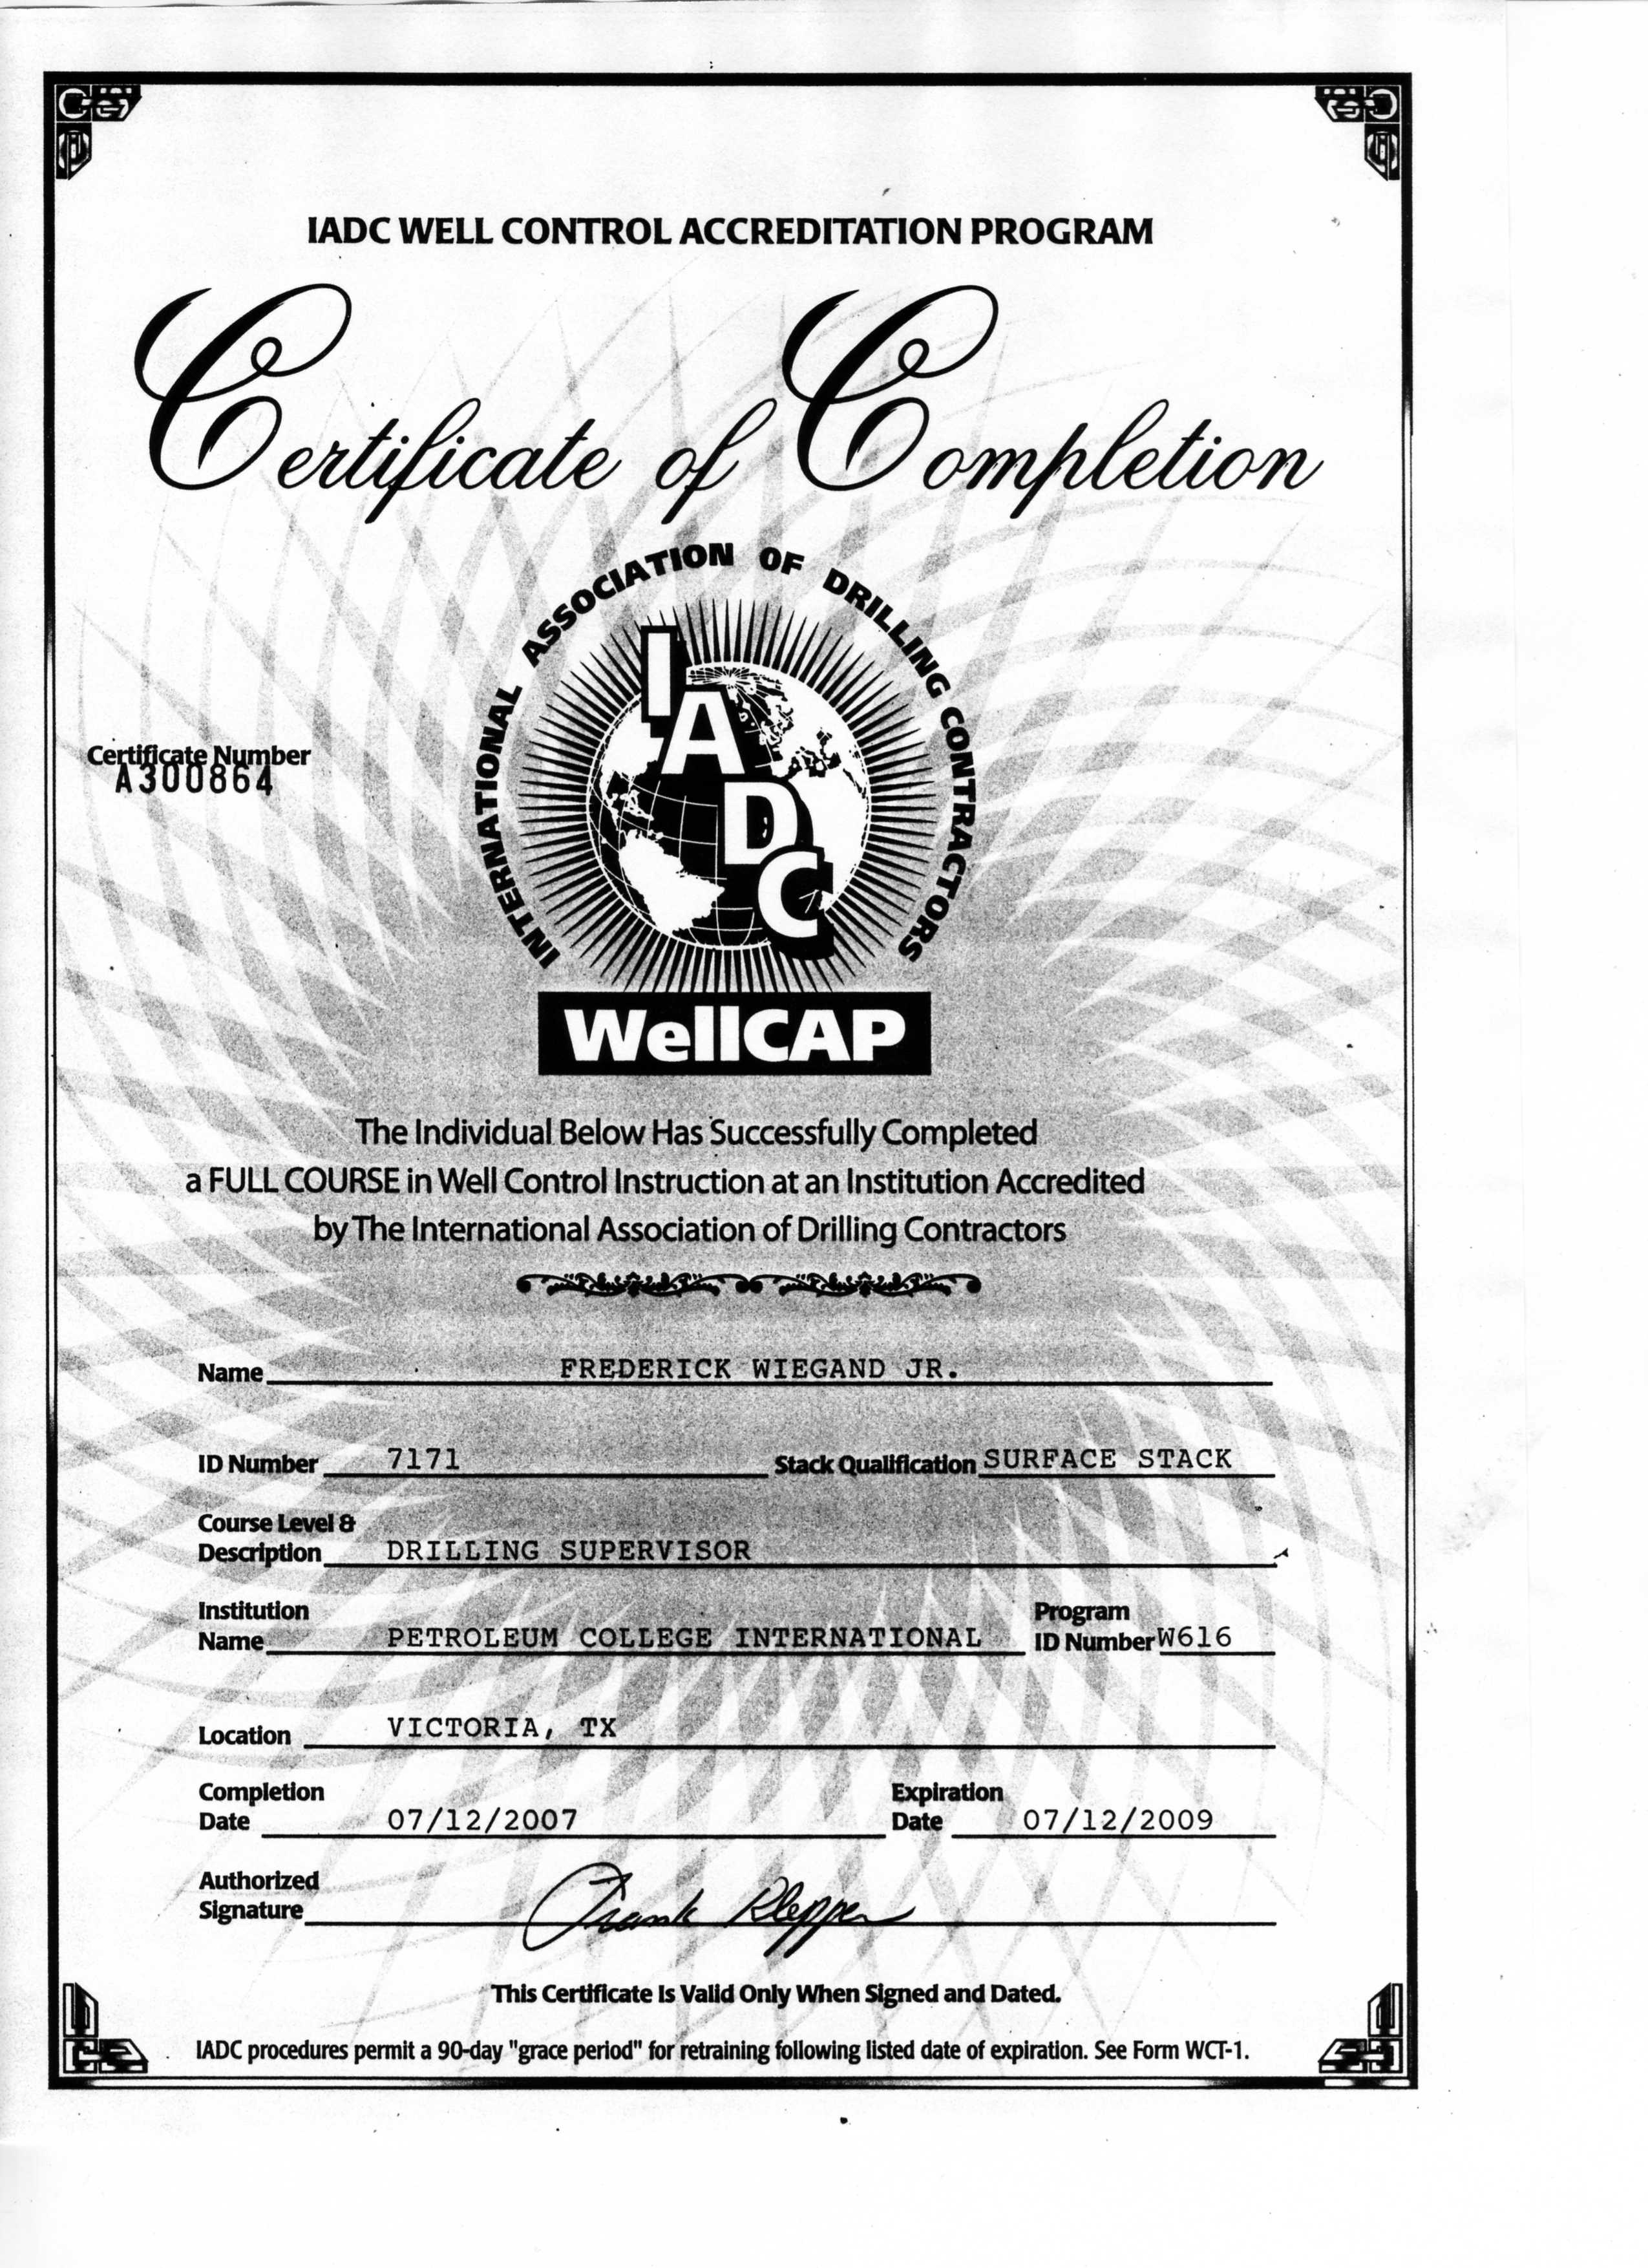 WellCapCertificateUofH12July20072009.JPG